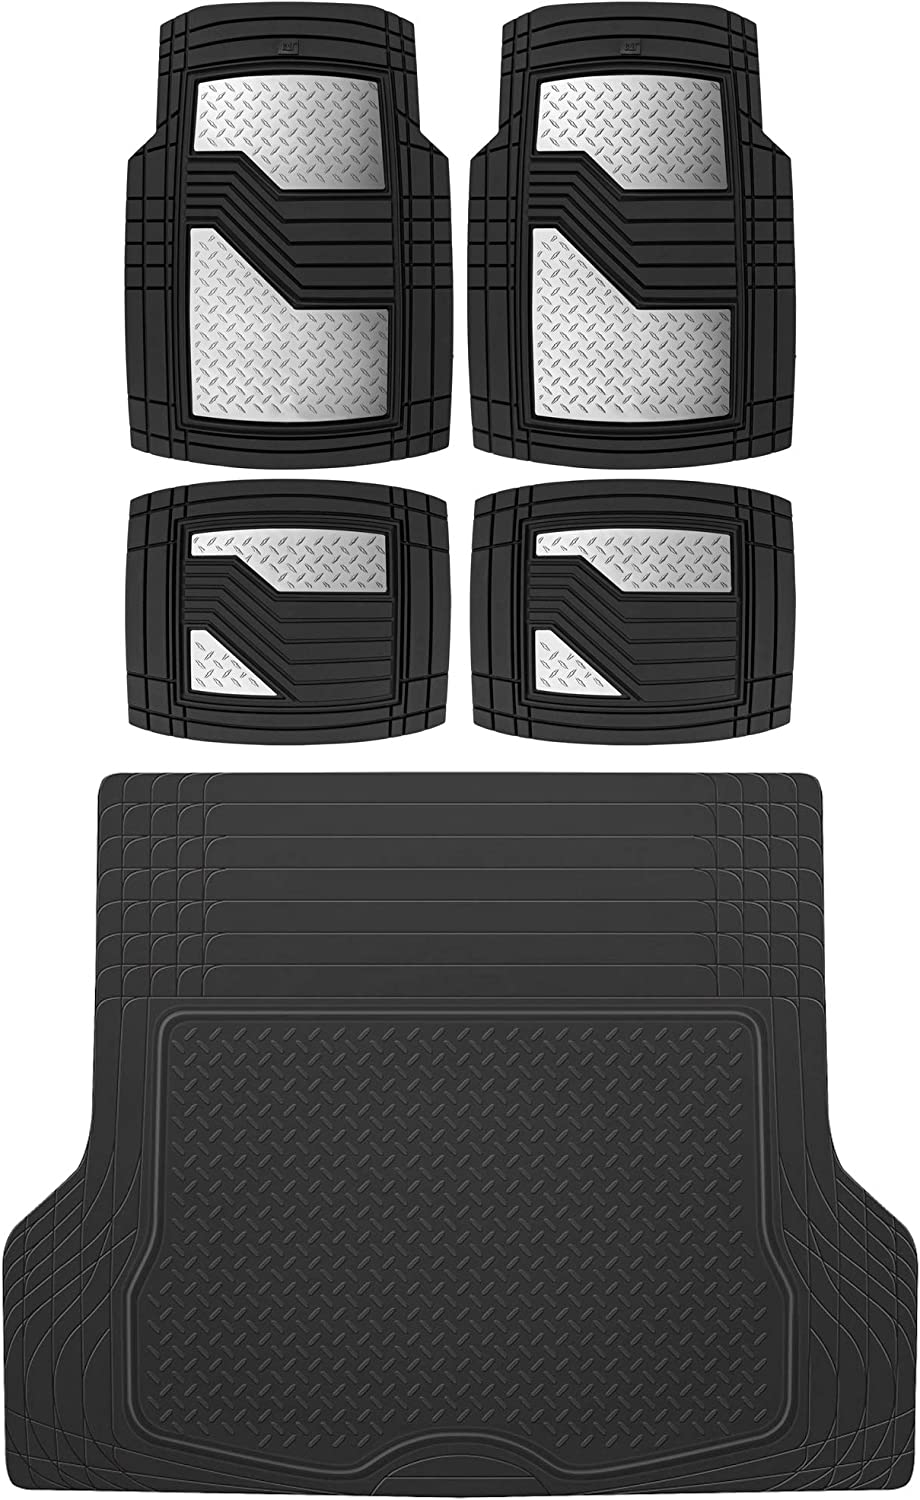 BDK Caterpillar CAMT-2314 (4-Piece) Total Protection Rubber Car Floor Mats, Universal Trim to Fit Front & Rear Combo Set with Trunk Cargo Mat Liner for Car Sedan SUV Van, Heavy Duty All Weather